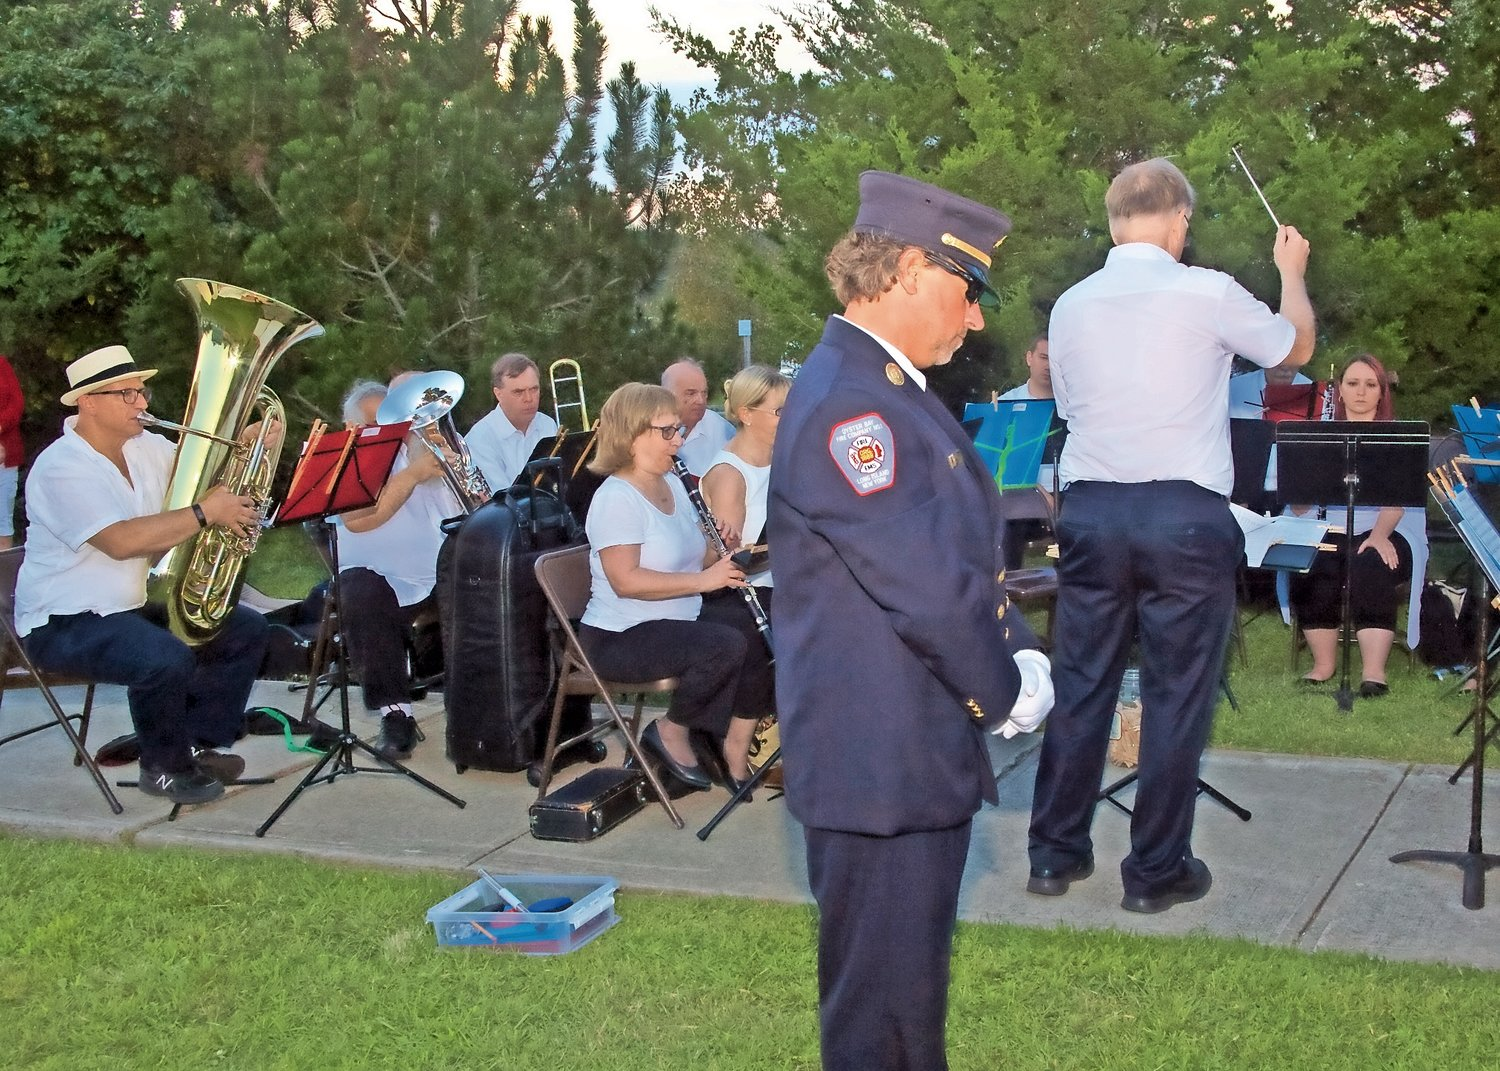 A firefighter from Oyster Bay Fire Company #1 was touched by the patriotic songs performed by the Oyster Bay Community Band.